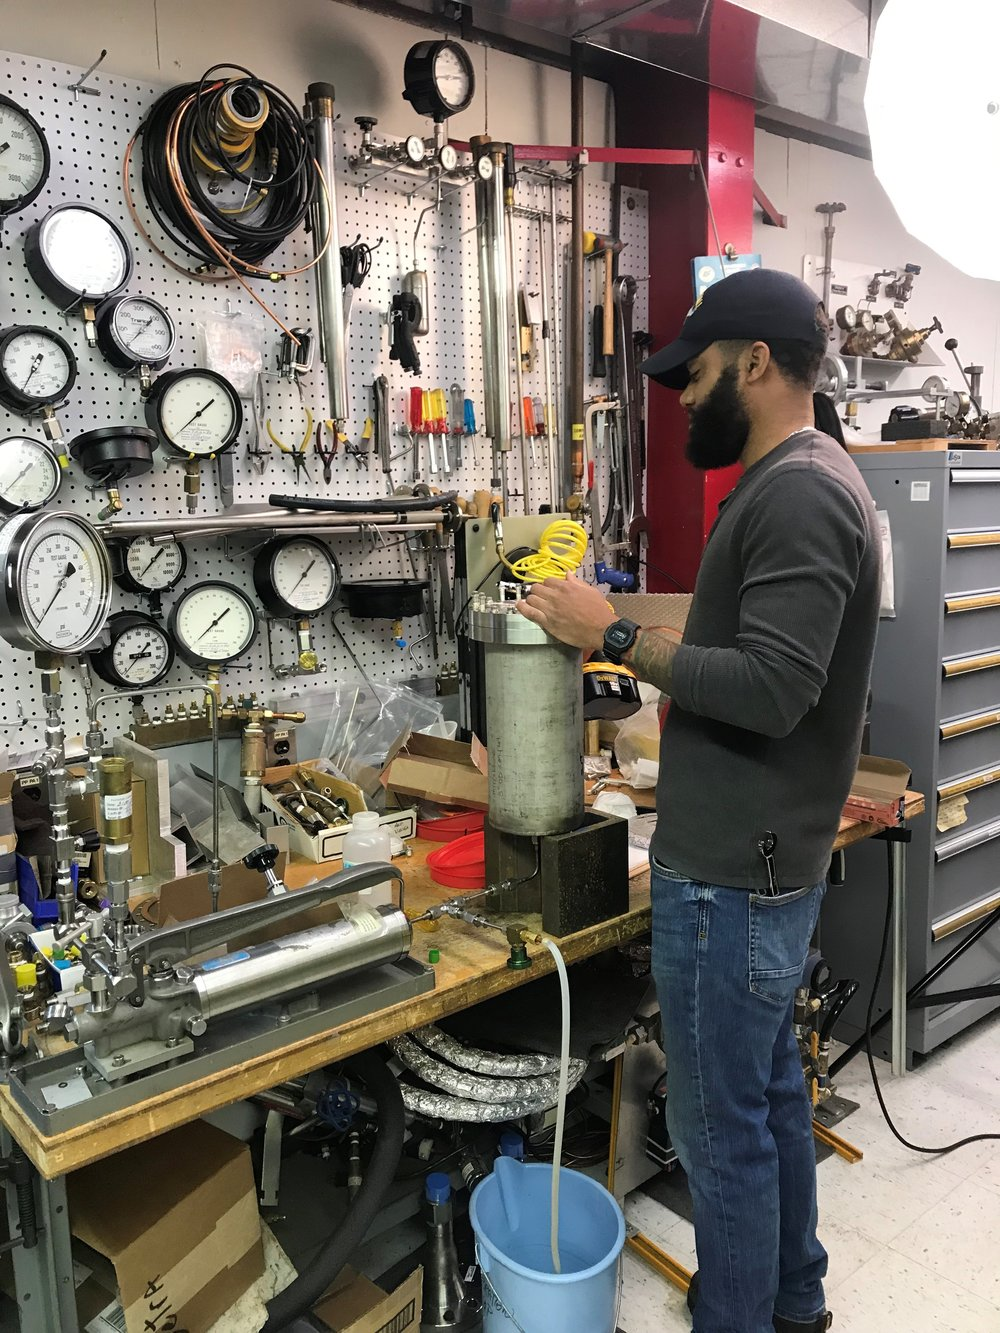 US Navy veteran Frederick Davis went from maintaining diesel engines on a ship to working on particle accelerator components at Fermi thanks to a internship program